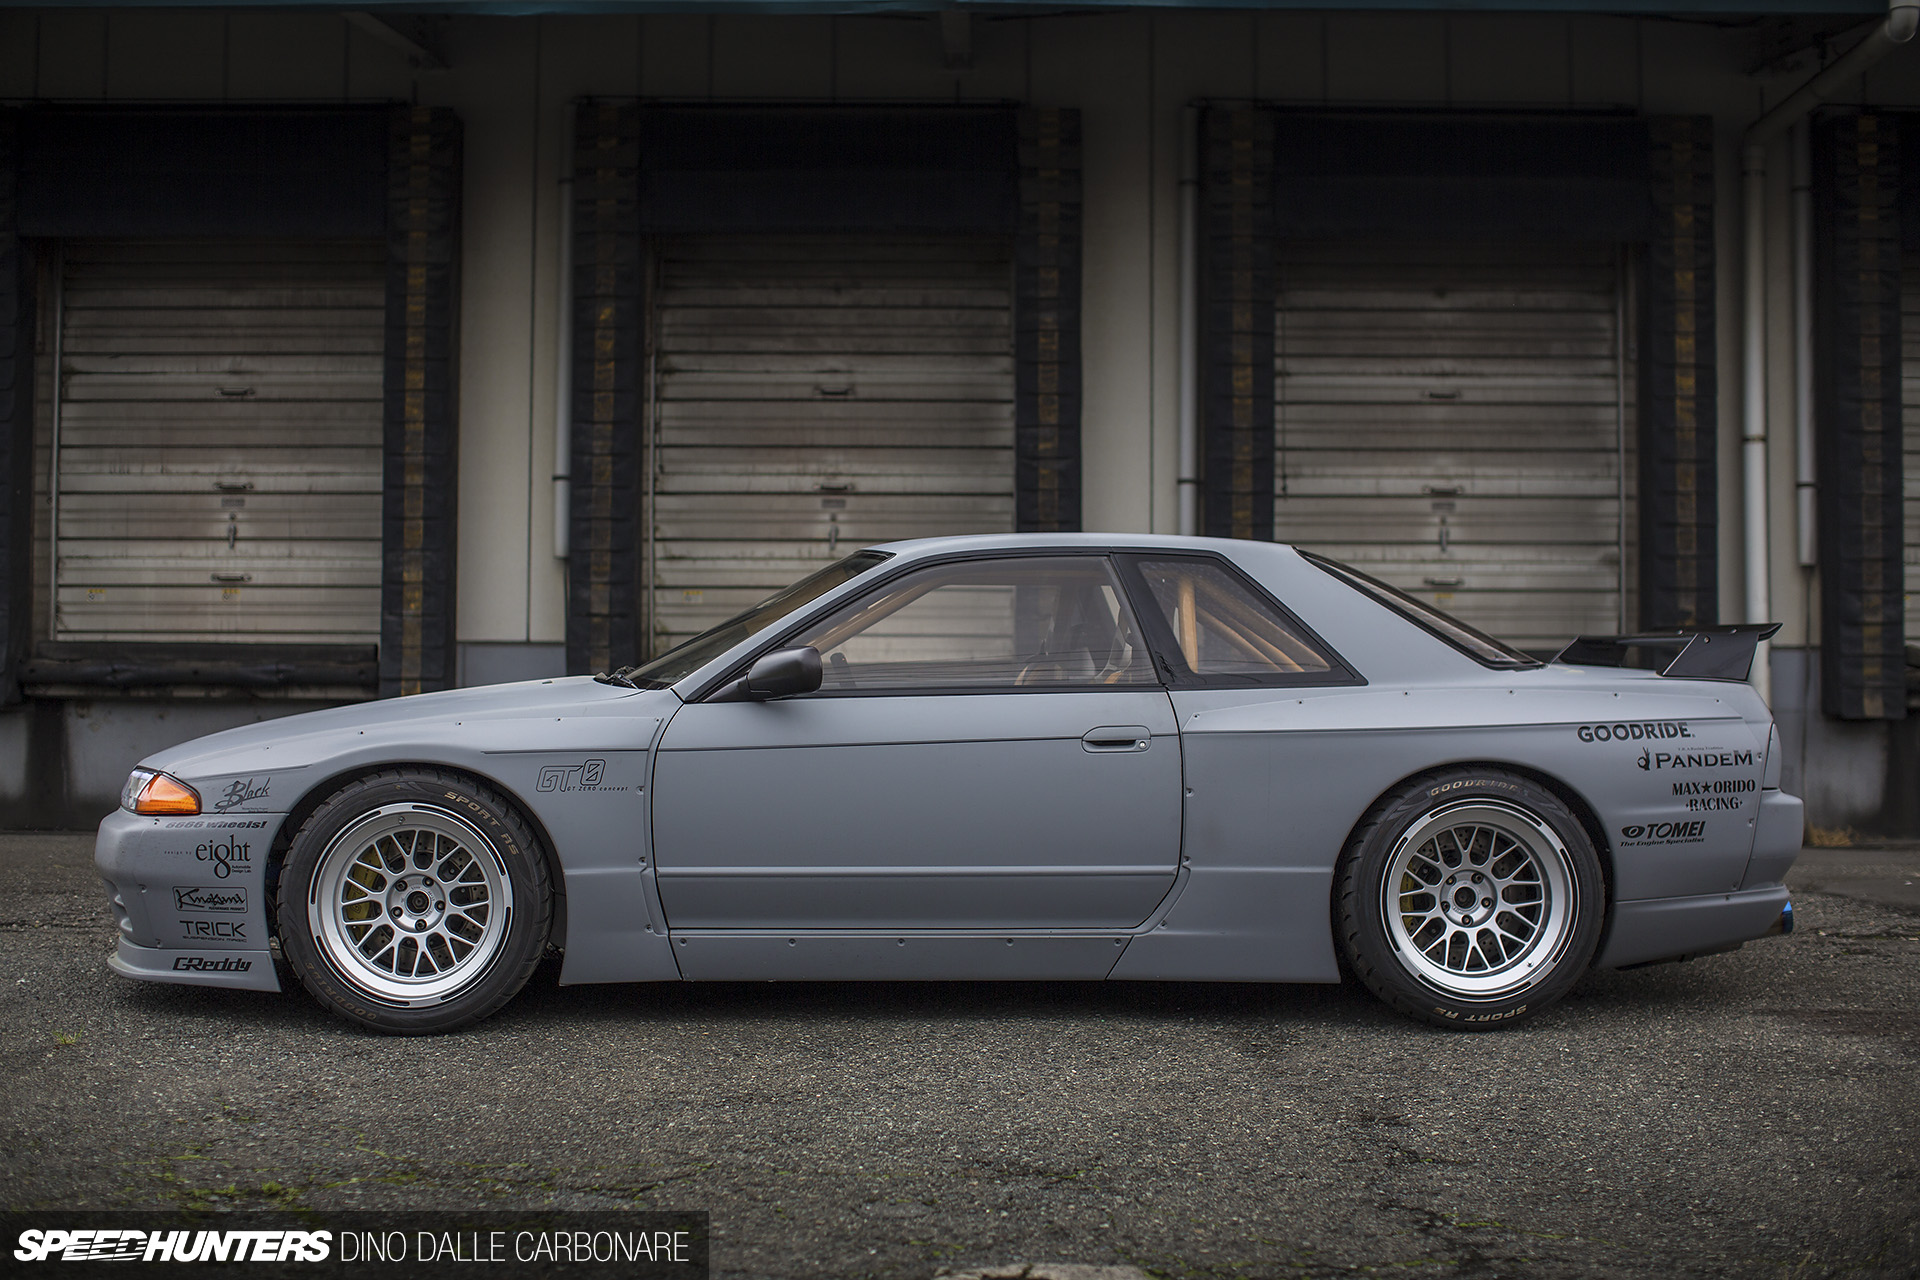 Nissan Skyline Gtr For Sale >> The $133,000 GT Zero: An R32 GT-R Reimagined - Speedhunters